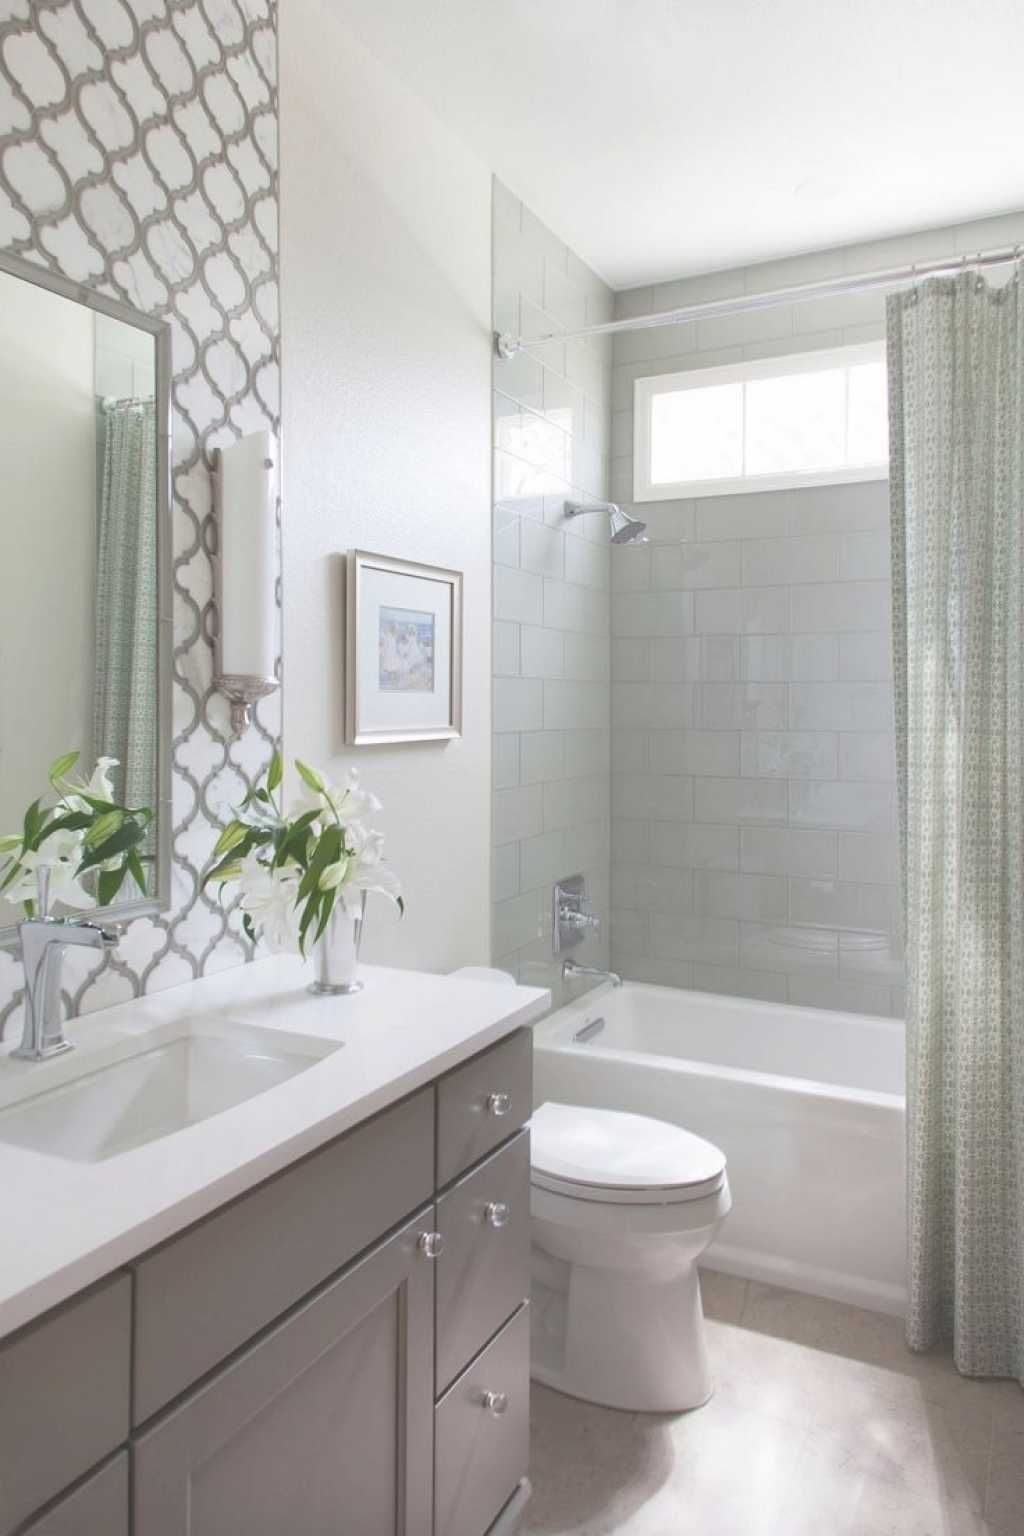 13 Smart Tricks Of How To Upgrade Best Color For A Small Bathroom With No Windows Diyhous Bathroom Tub Shower Combo Small Bathroom Remodel Budget Bathroom Remodel